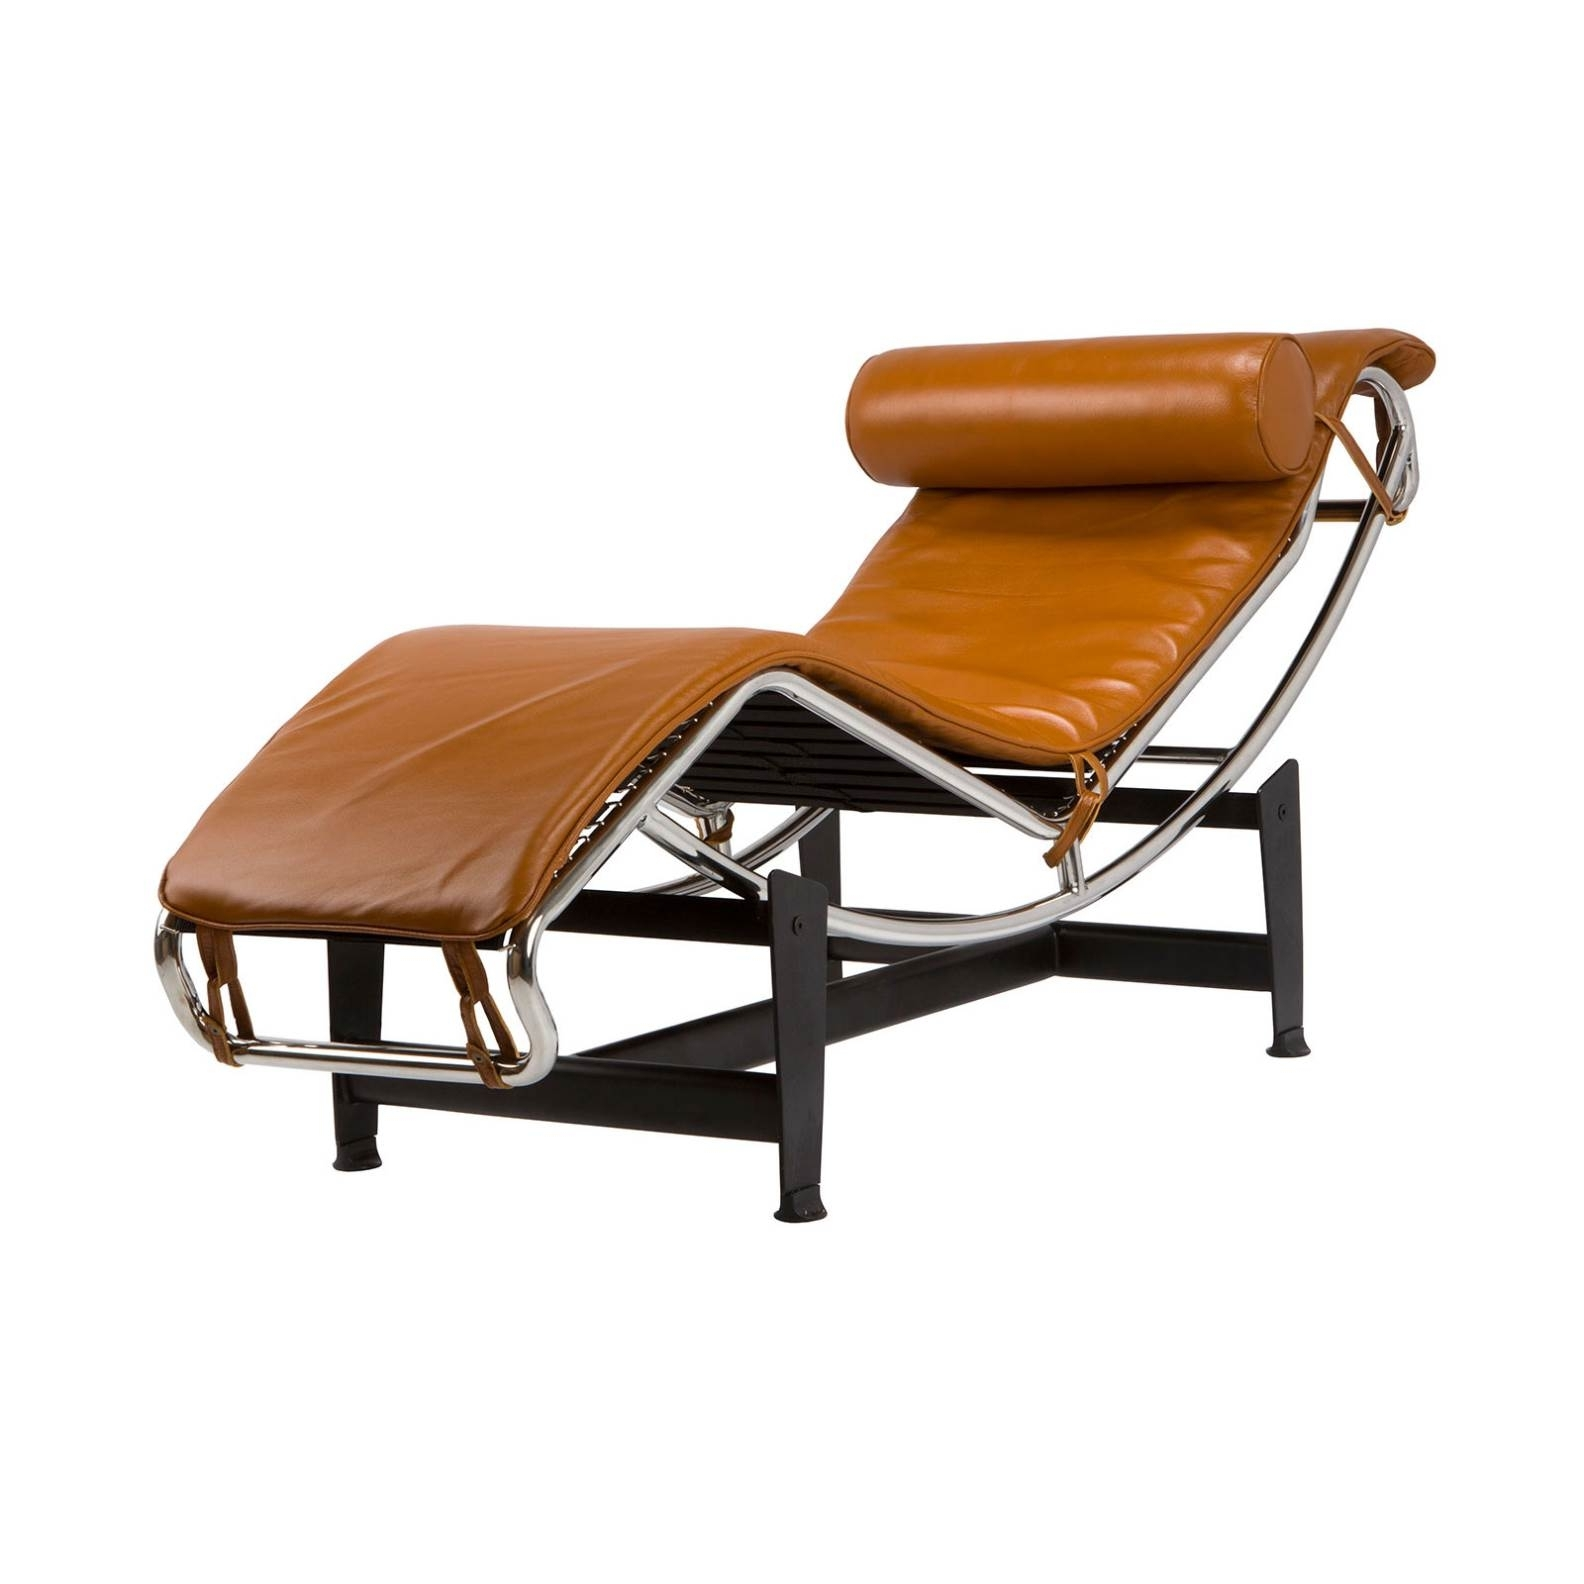 Most Recently Released Chaise Lounge Chairs Under $100 Pertaining To Patio Chaise Lounge Chairs Under $ (View 15 of 15)